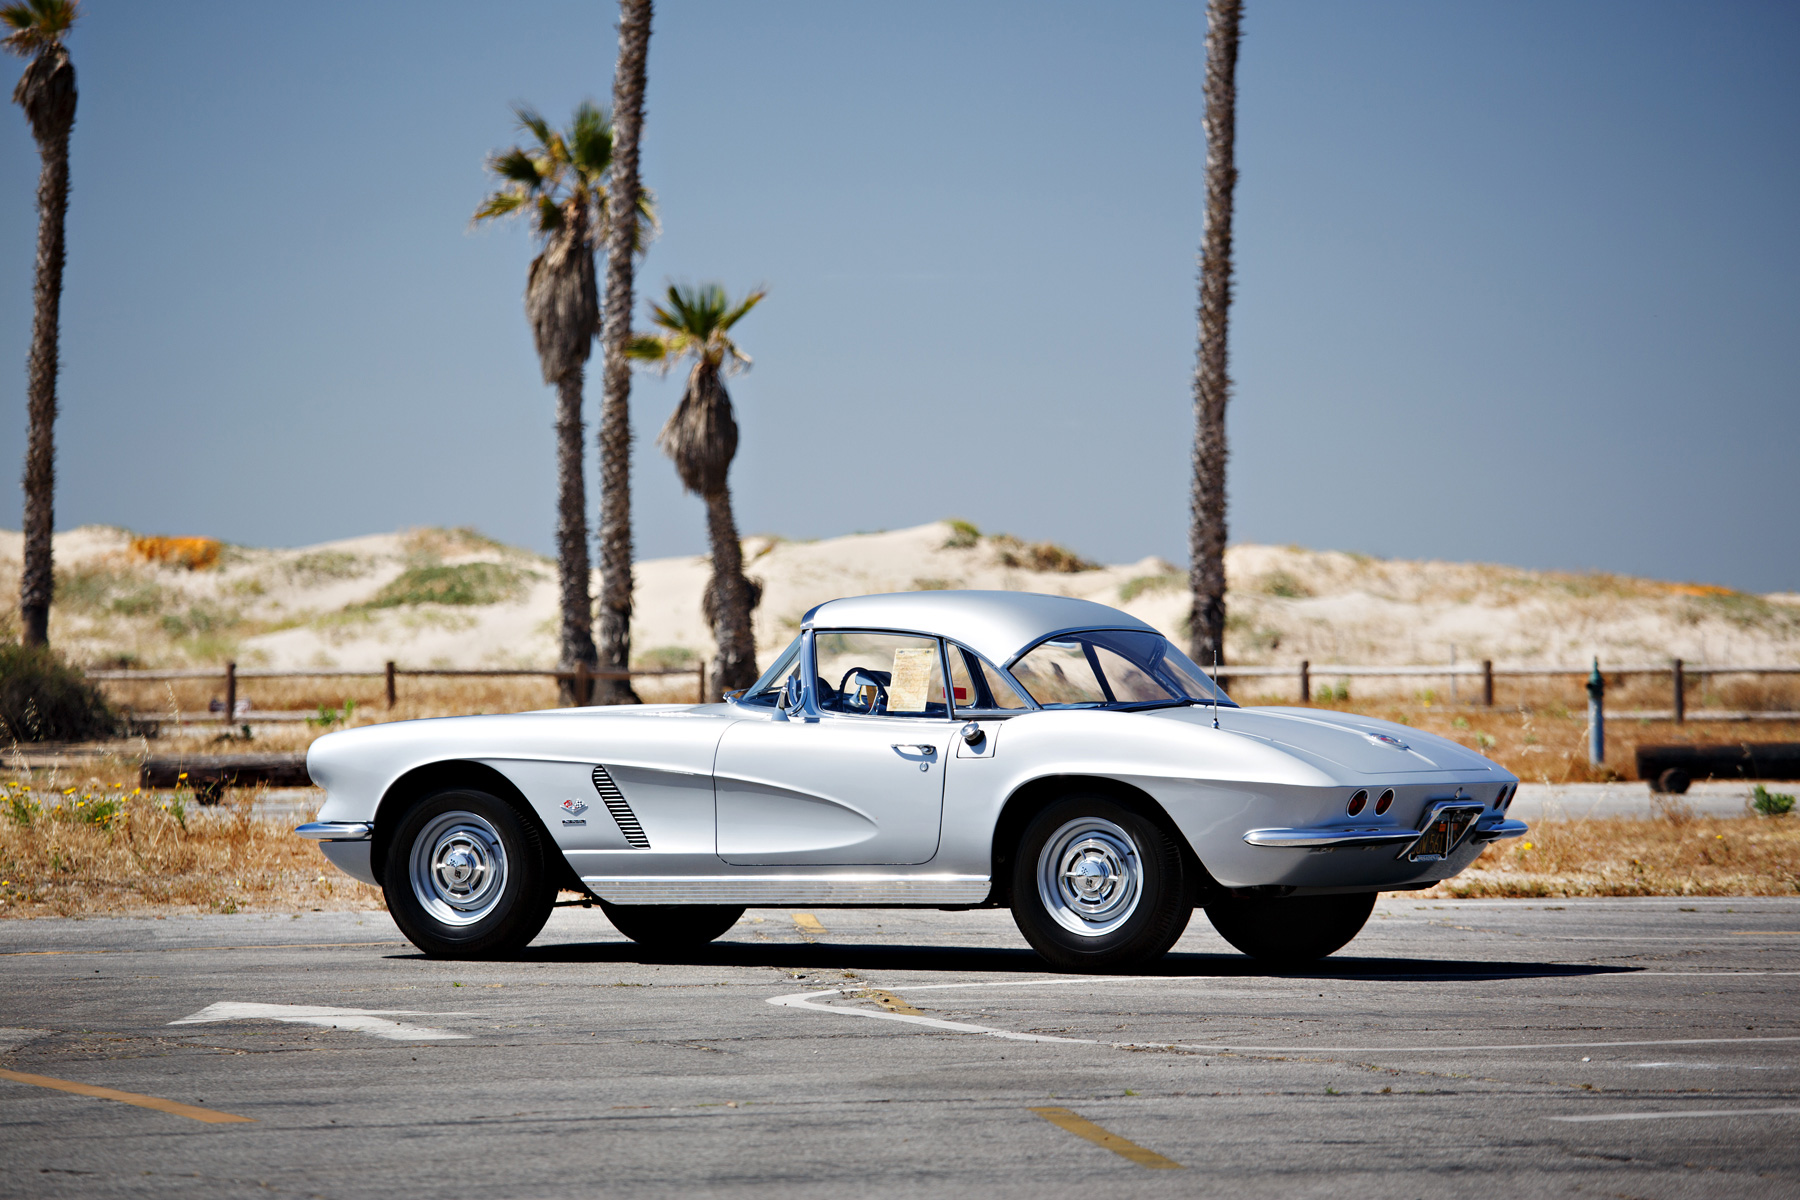 1962 Chevrolet Corvette 327/360 Fuel-Injected Roadster